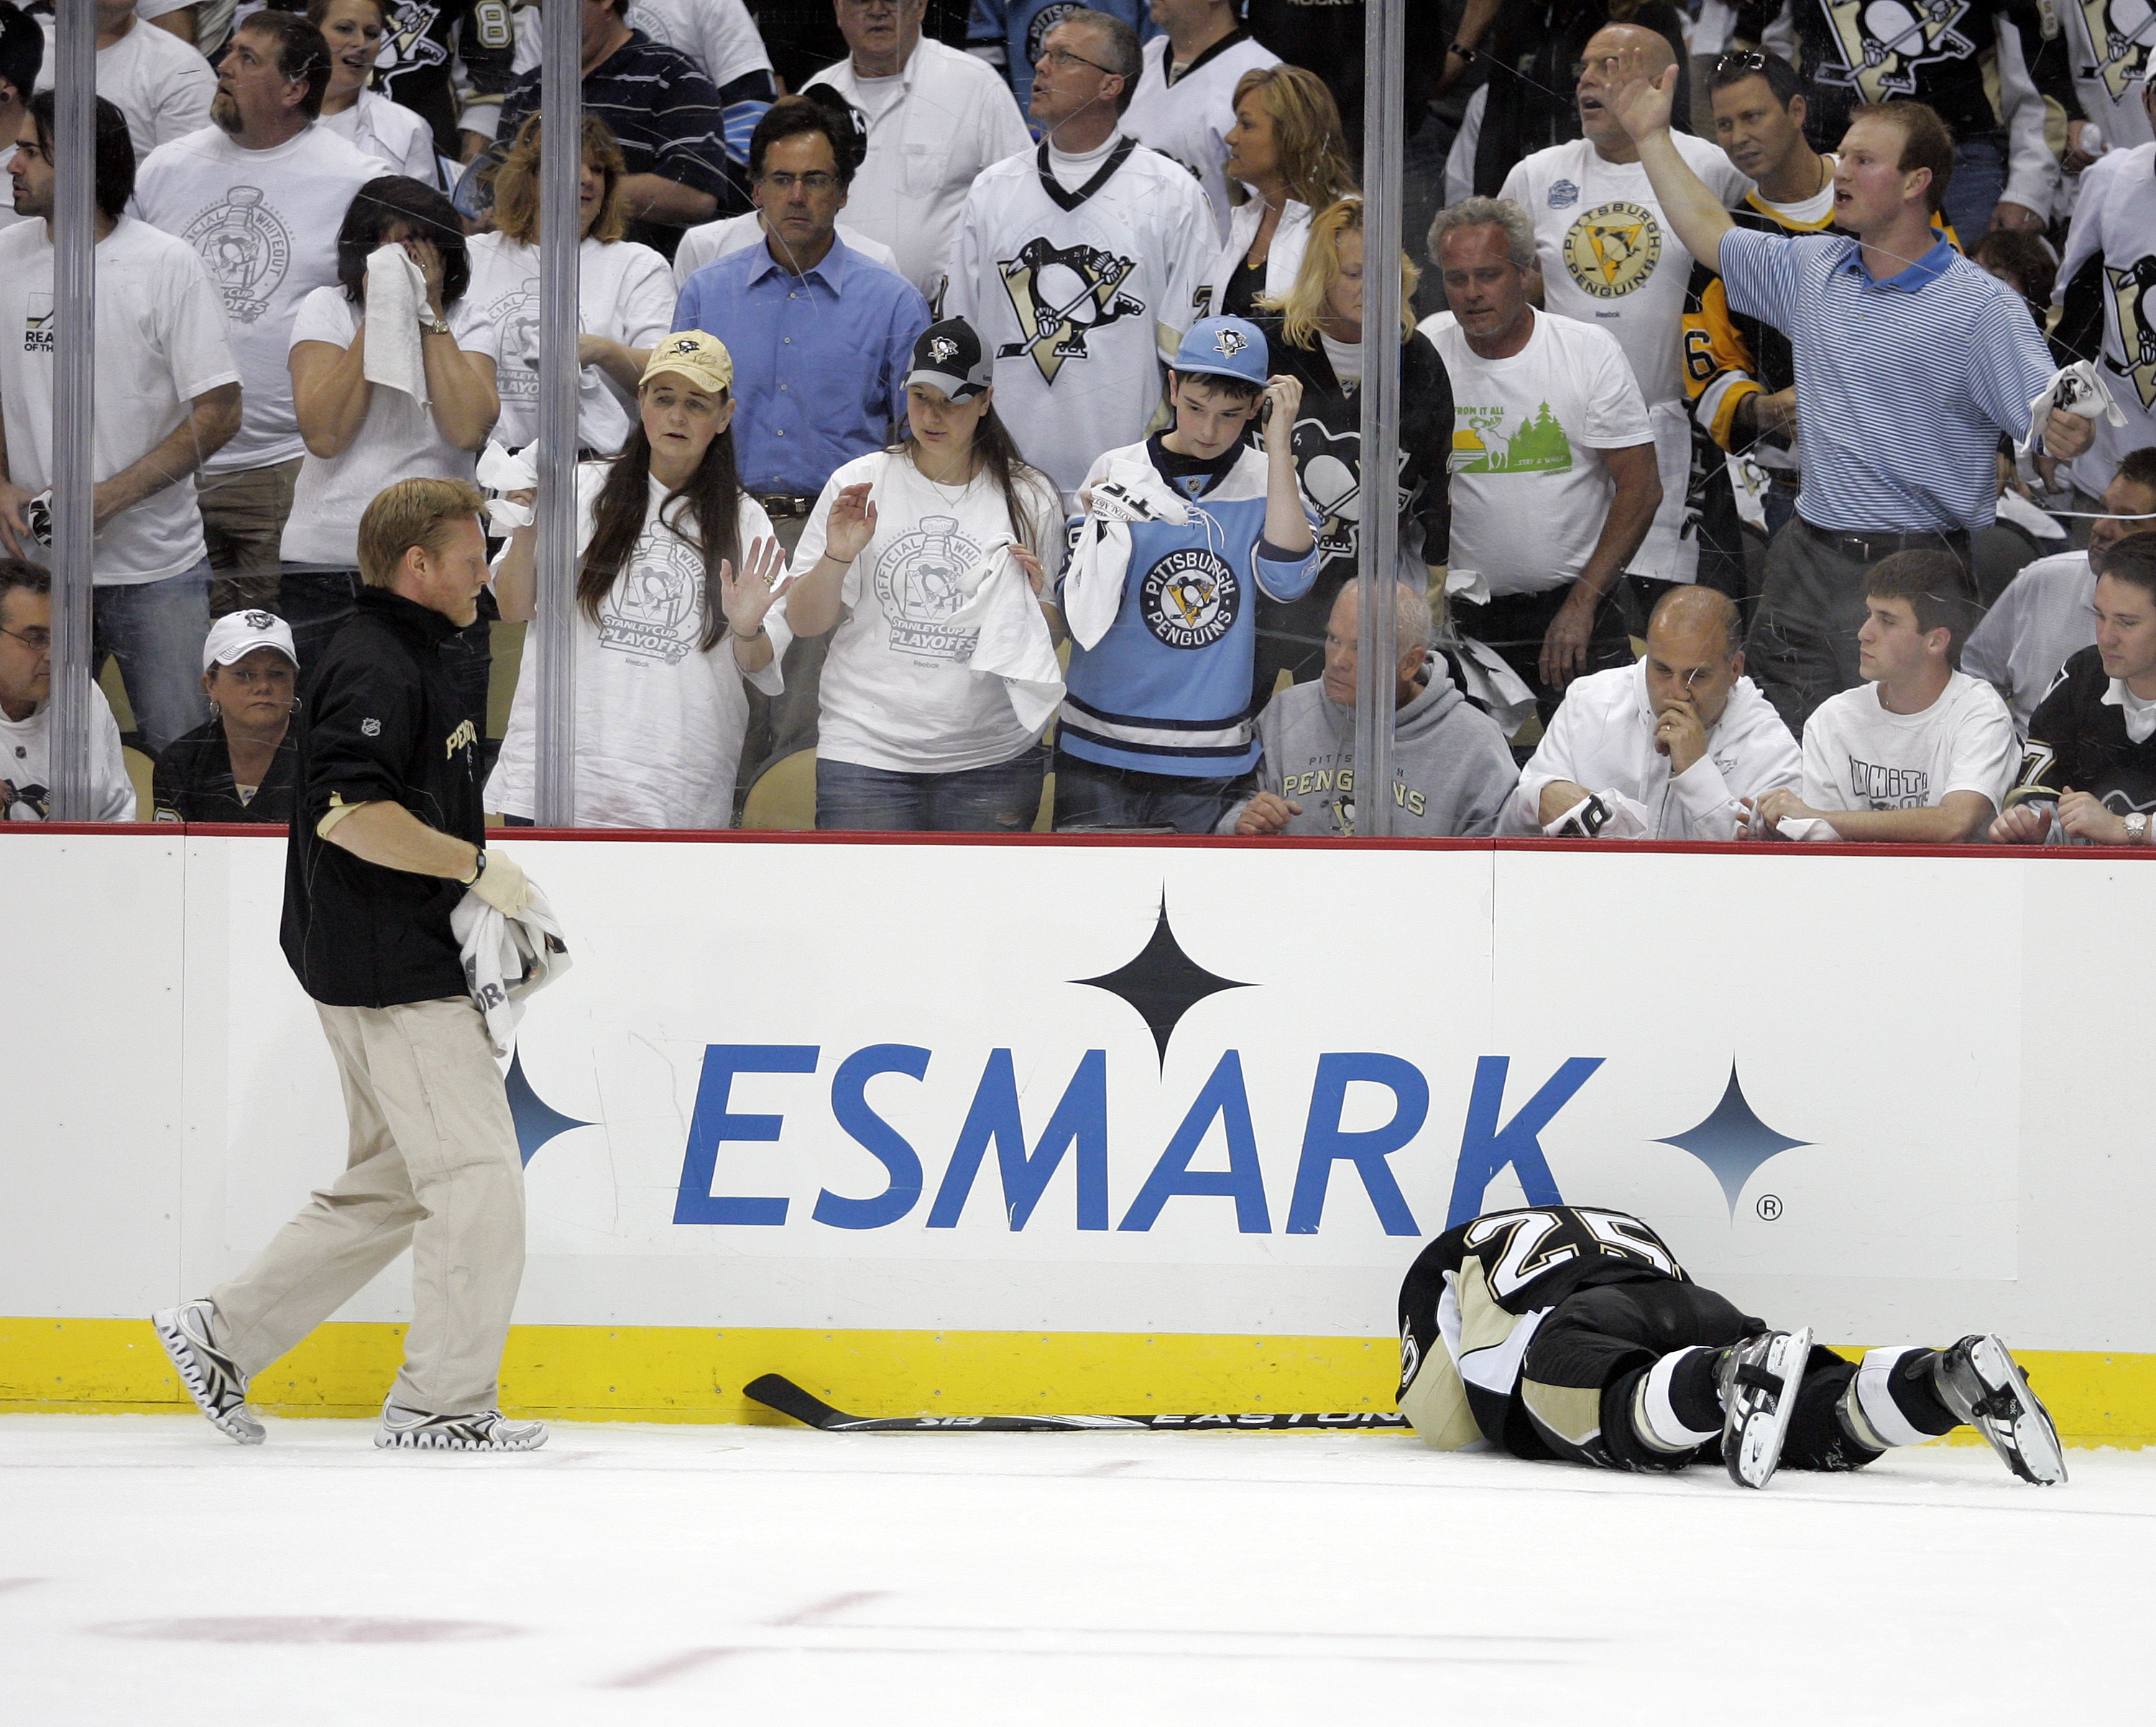 PITTSBURGH, PA - APRIL 27:  Maxime Talbot #25 of the Pittsburgh Penguins lies on the ice after being checked into the board against the Tampa Bay Lightning in Game Seven of the Eastern Conference Quarterfinals during the 2011 NHL Stanley Cup Playoffs at C